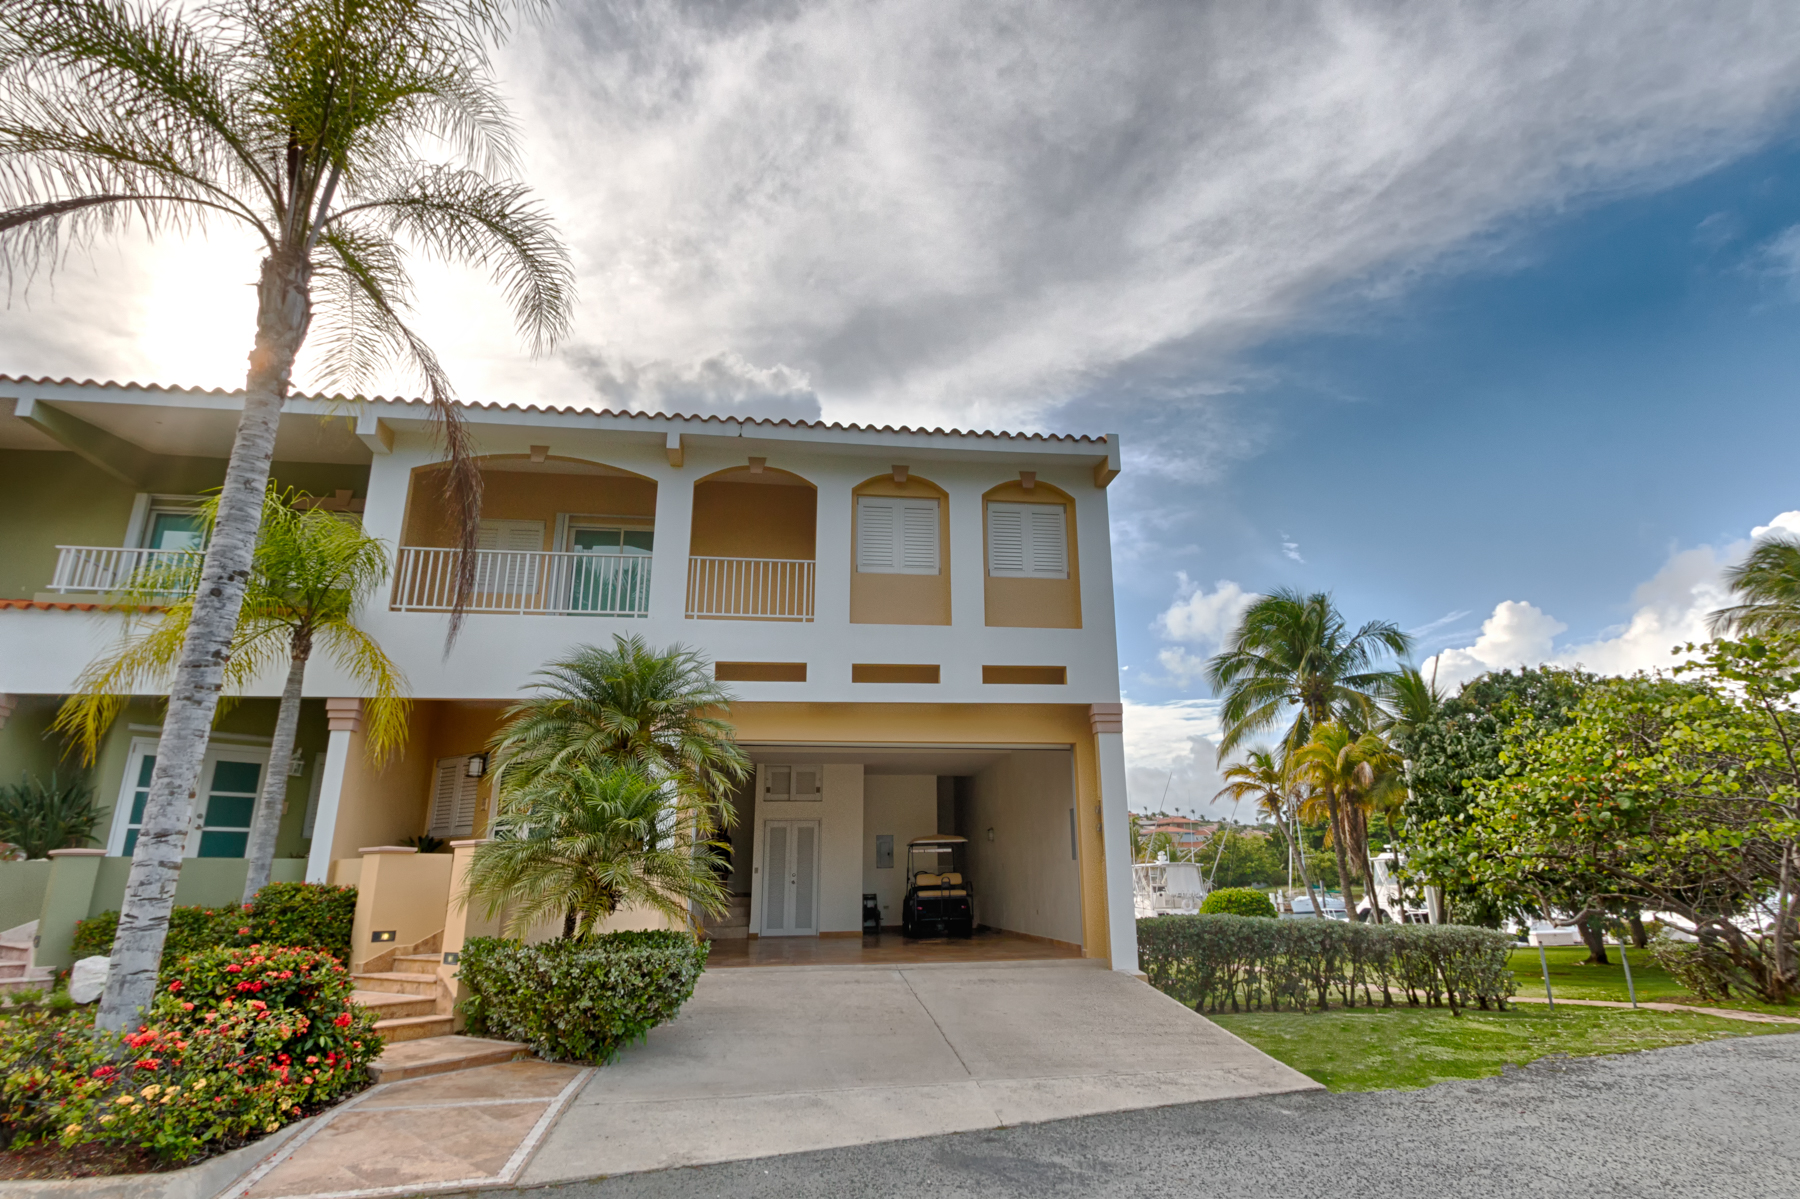 Additional photo for property listing at Seascape Rental 13 Seascape Palmas Del Mar, Puerto Rico 00791 Puerto Rico